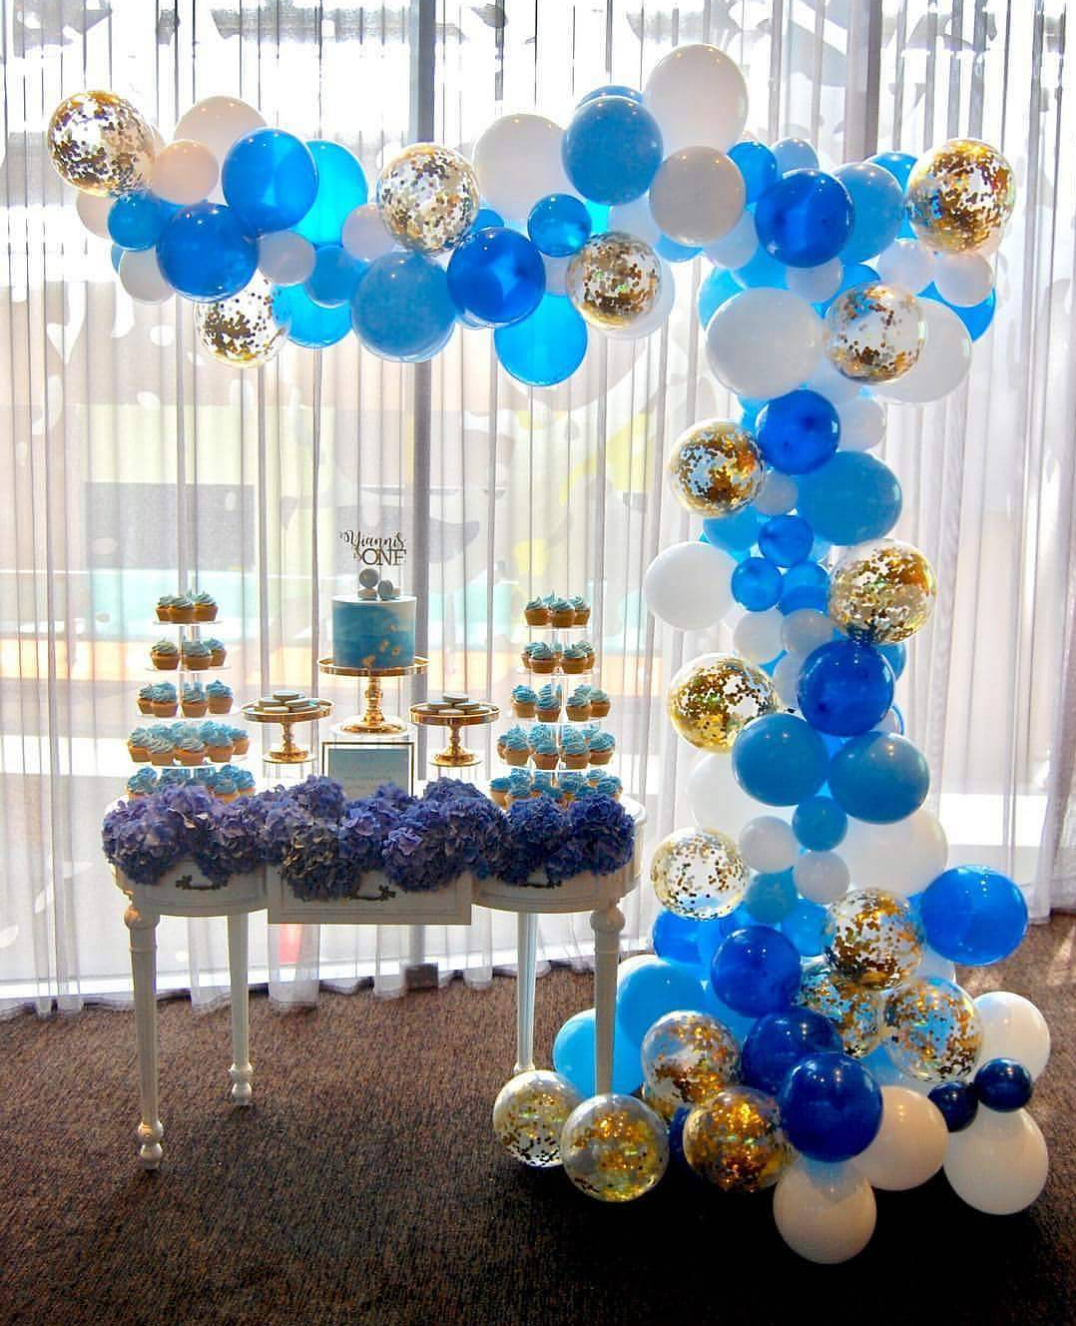 101 fiestas ideas para un bautizo y primer a o econ mico for Decoracion simple con globos